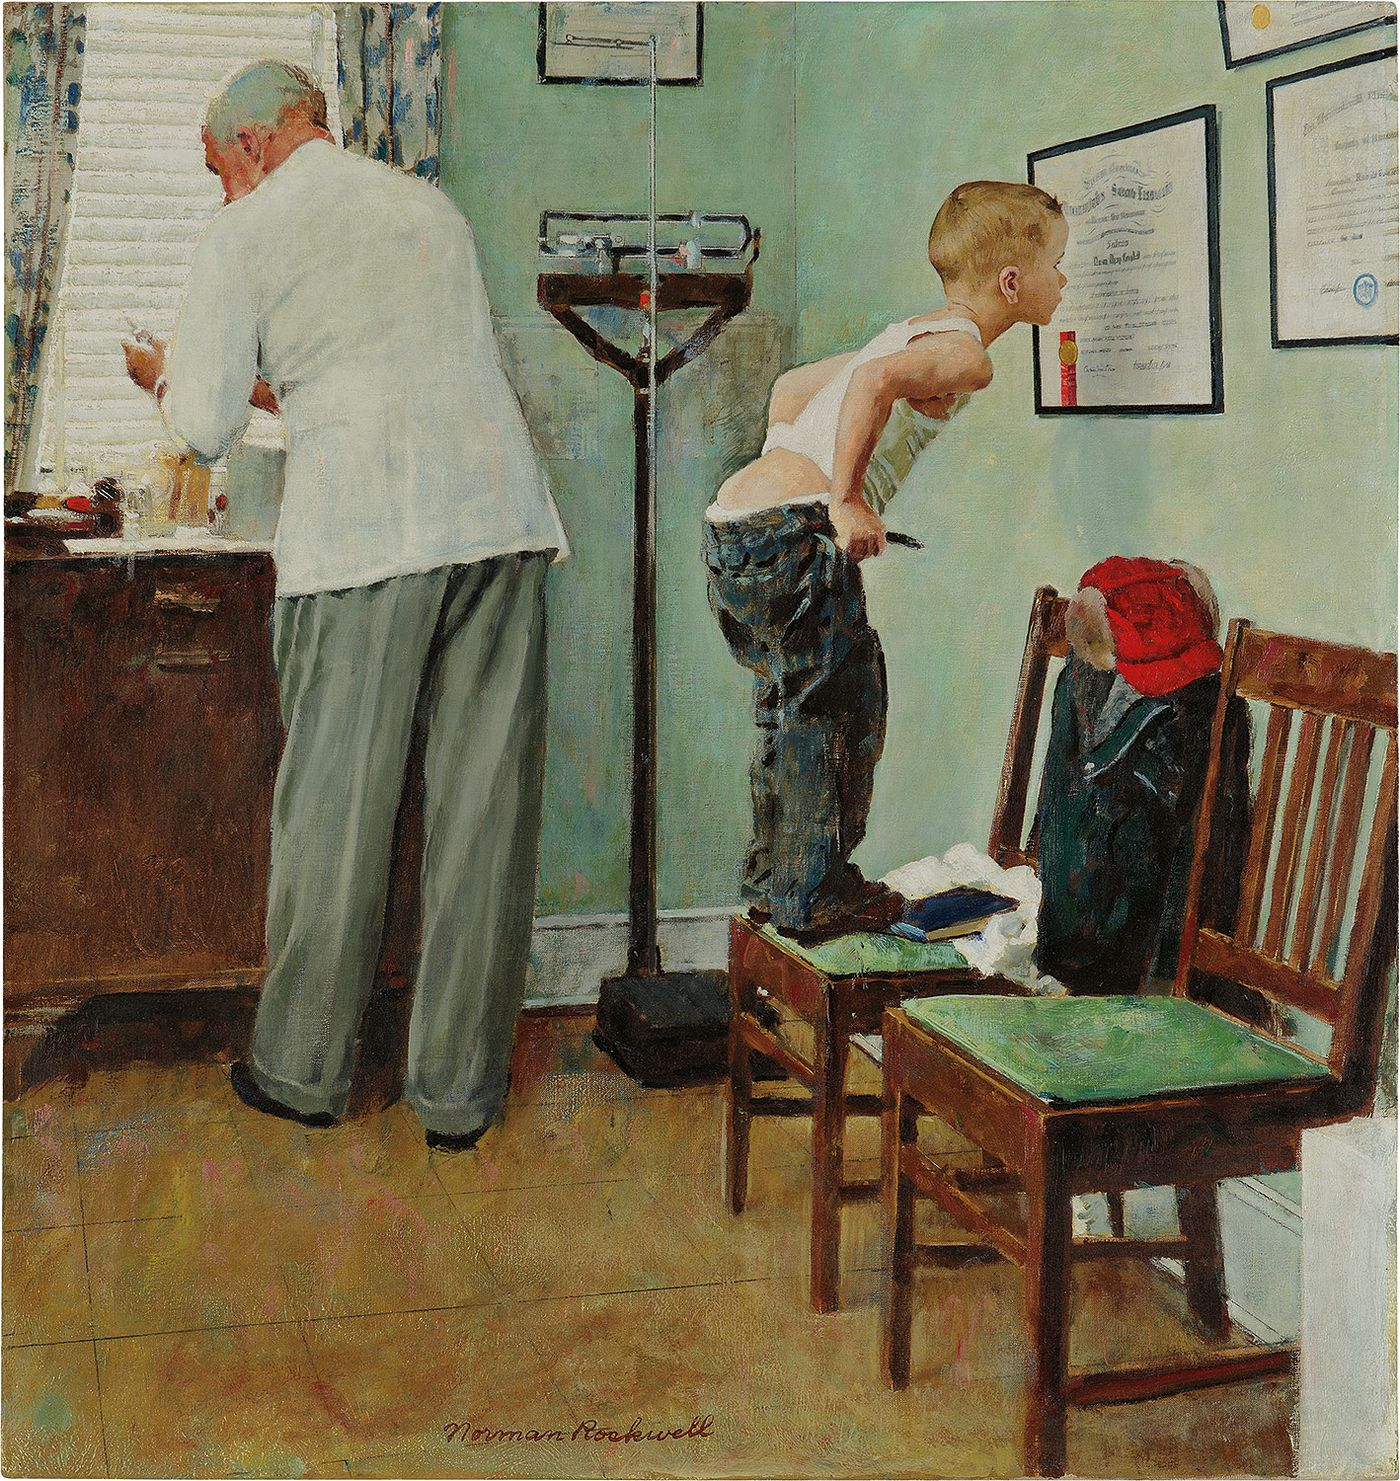 As one of the American master's most iconic images comes to auction, we look at depictions of a day at the doctor's office from various eras of art history.